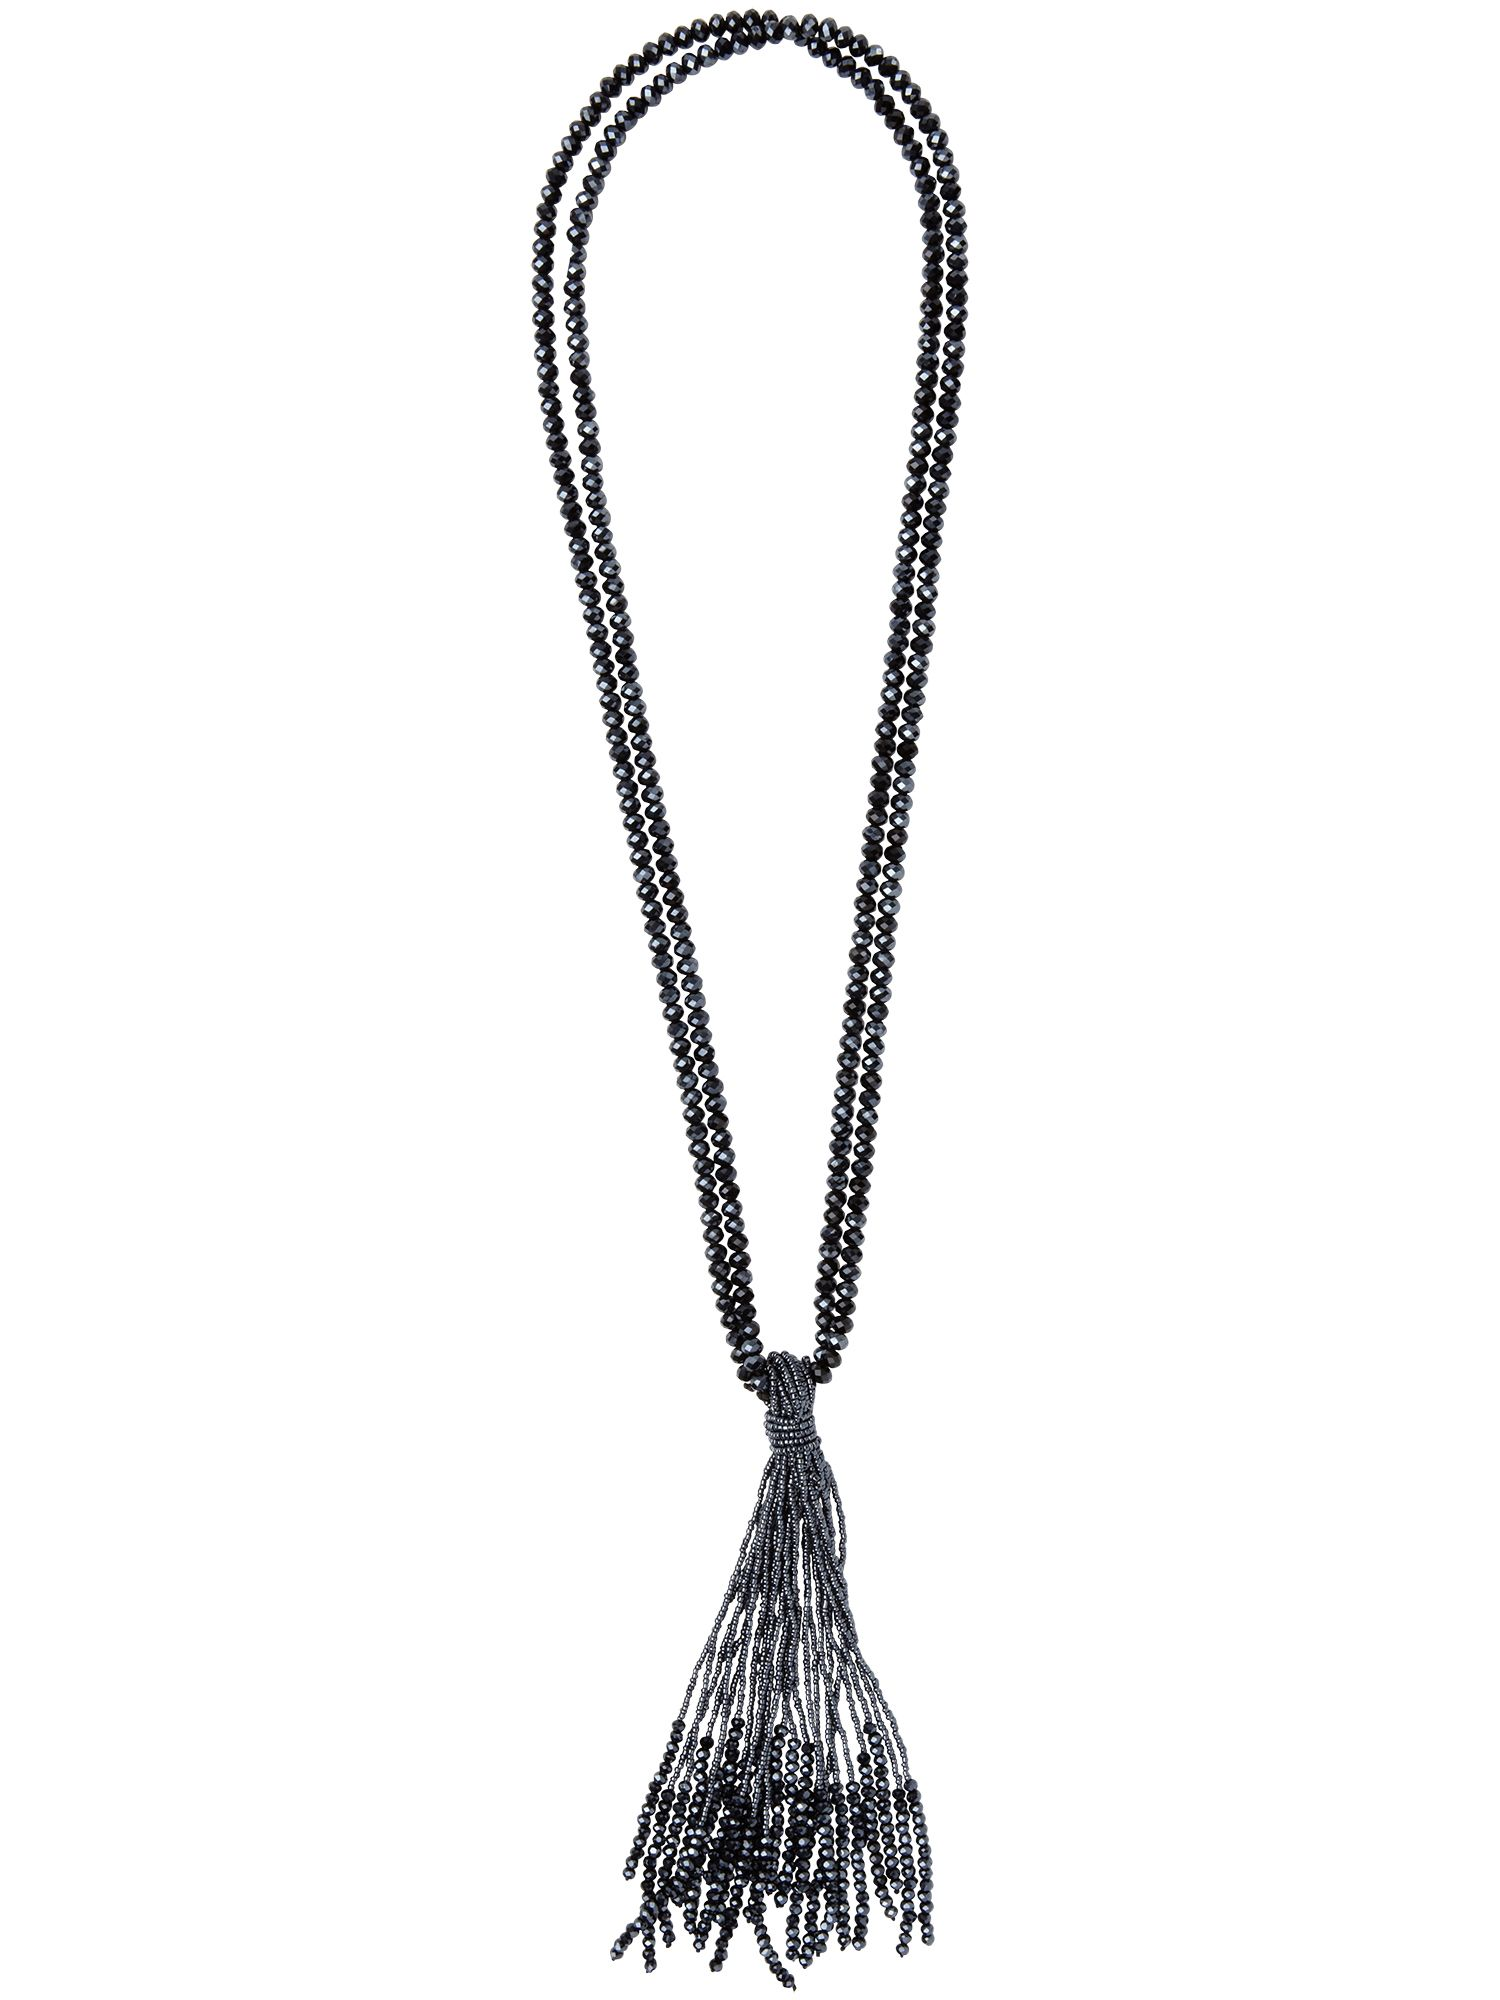 Tilly tassle necklace